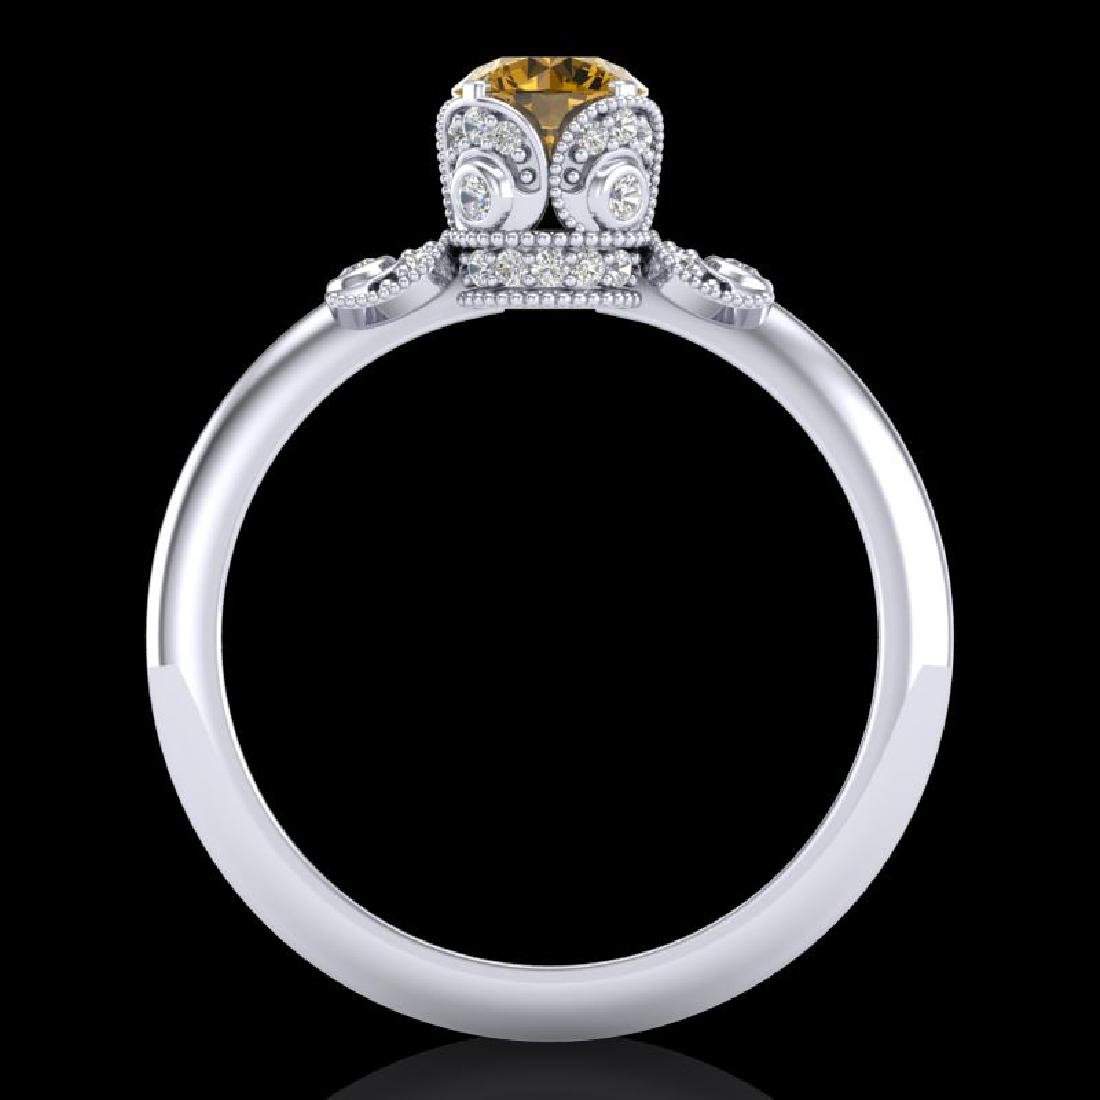 1 CTW Intense Fancy Yellow Diamond Engagement Art Deco - 3